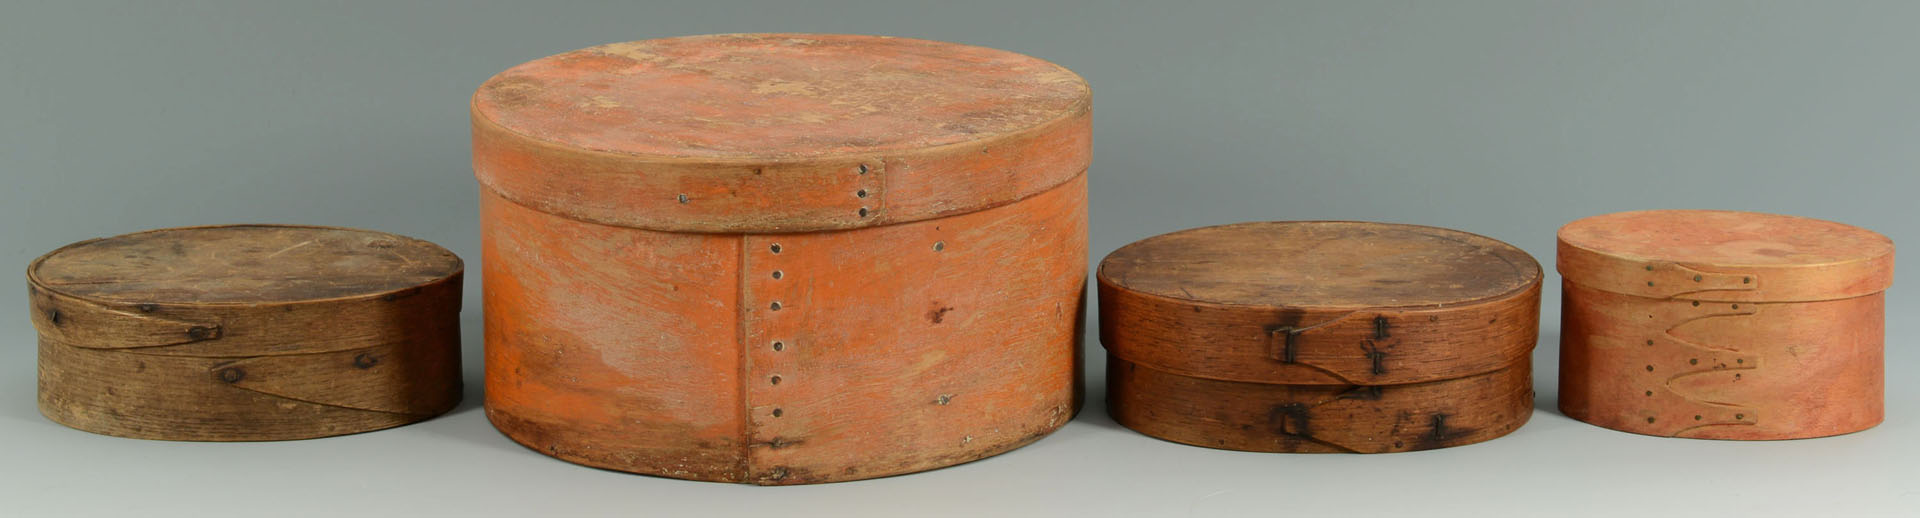 Lot 66: Grouping of 4 boxes, some Shaker painted